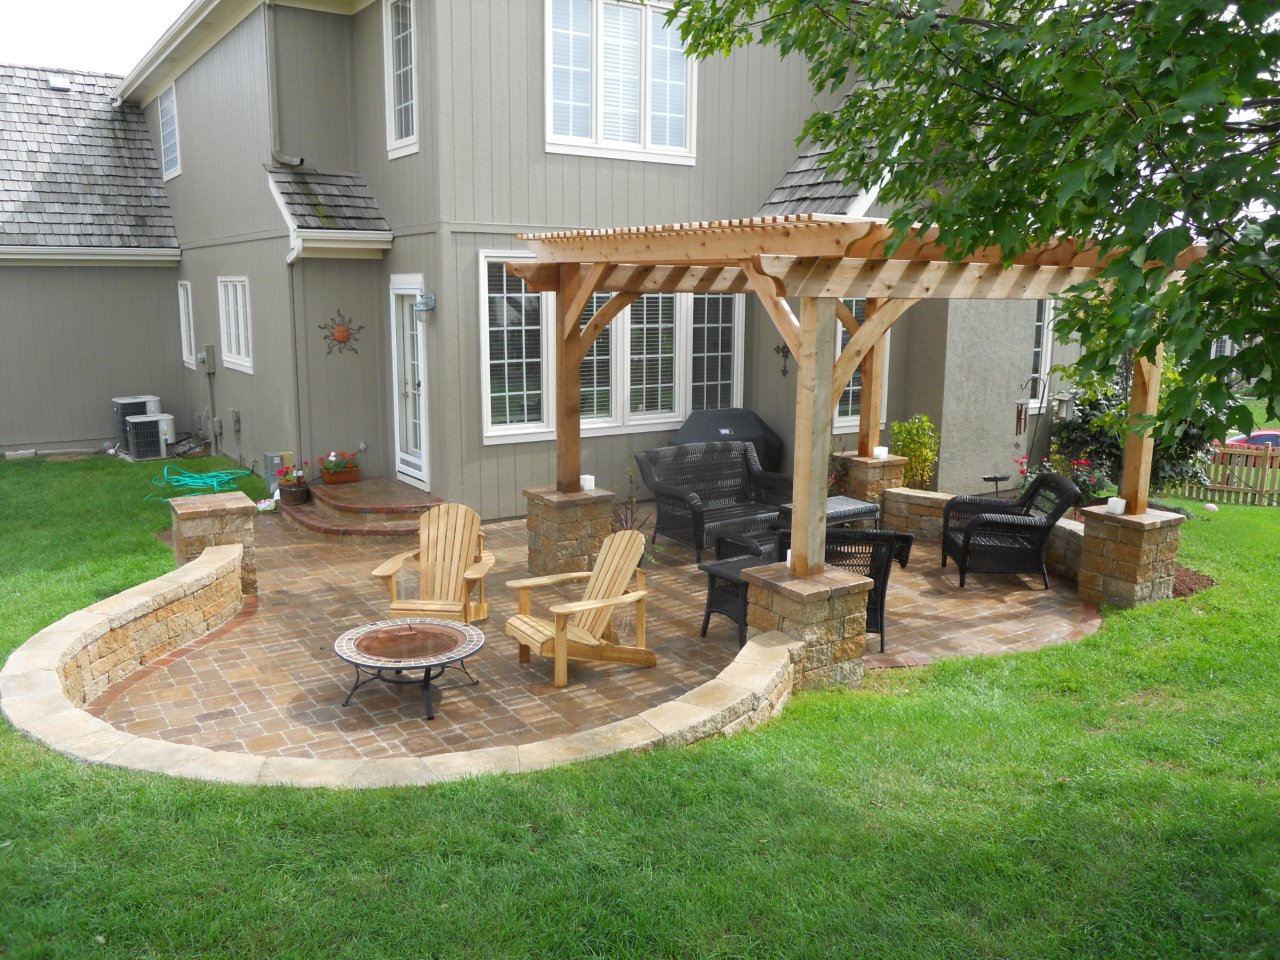 patio design ideas they design awesome pergola patio ideas outdoor living pertaining to XPQHIPN